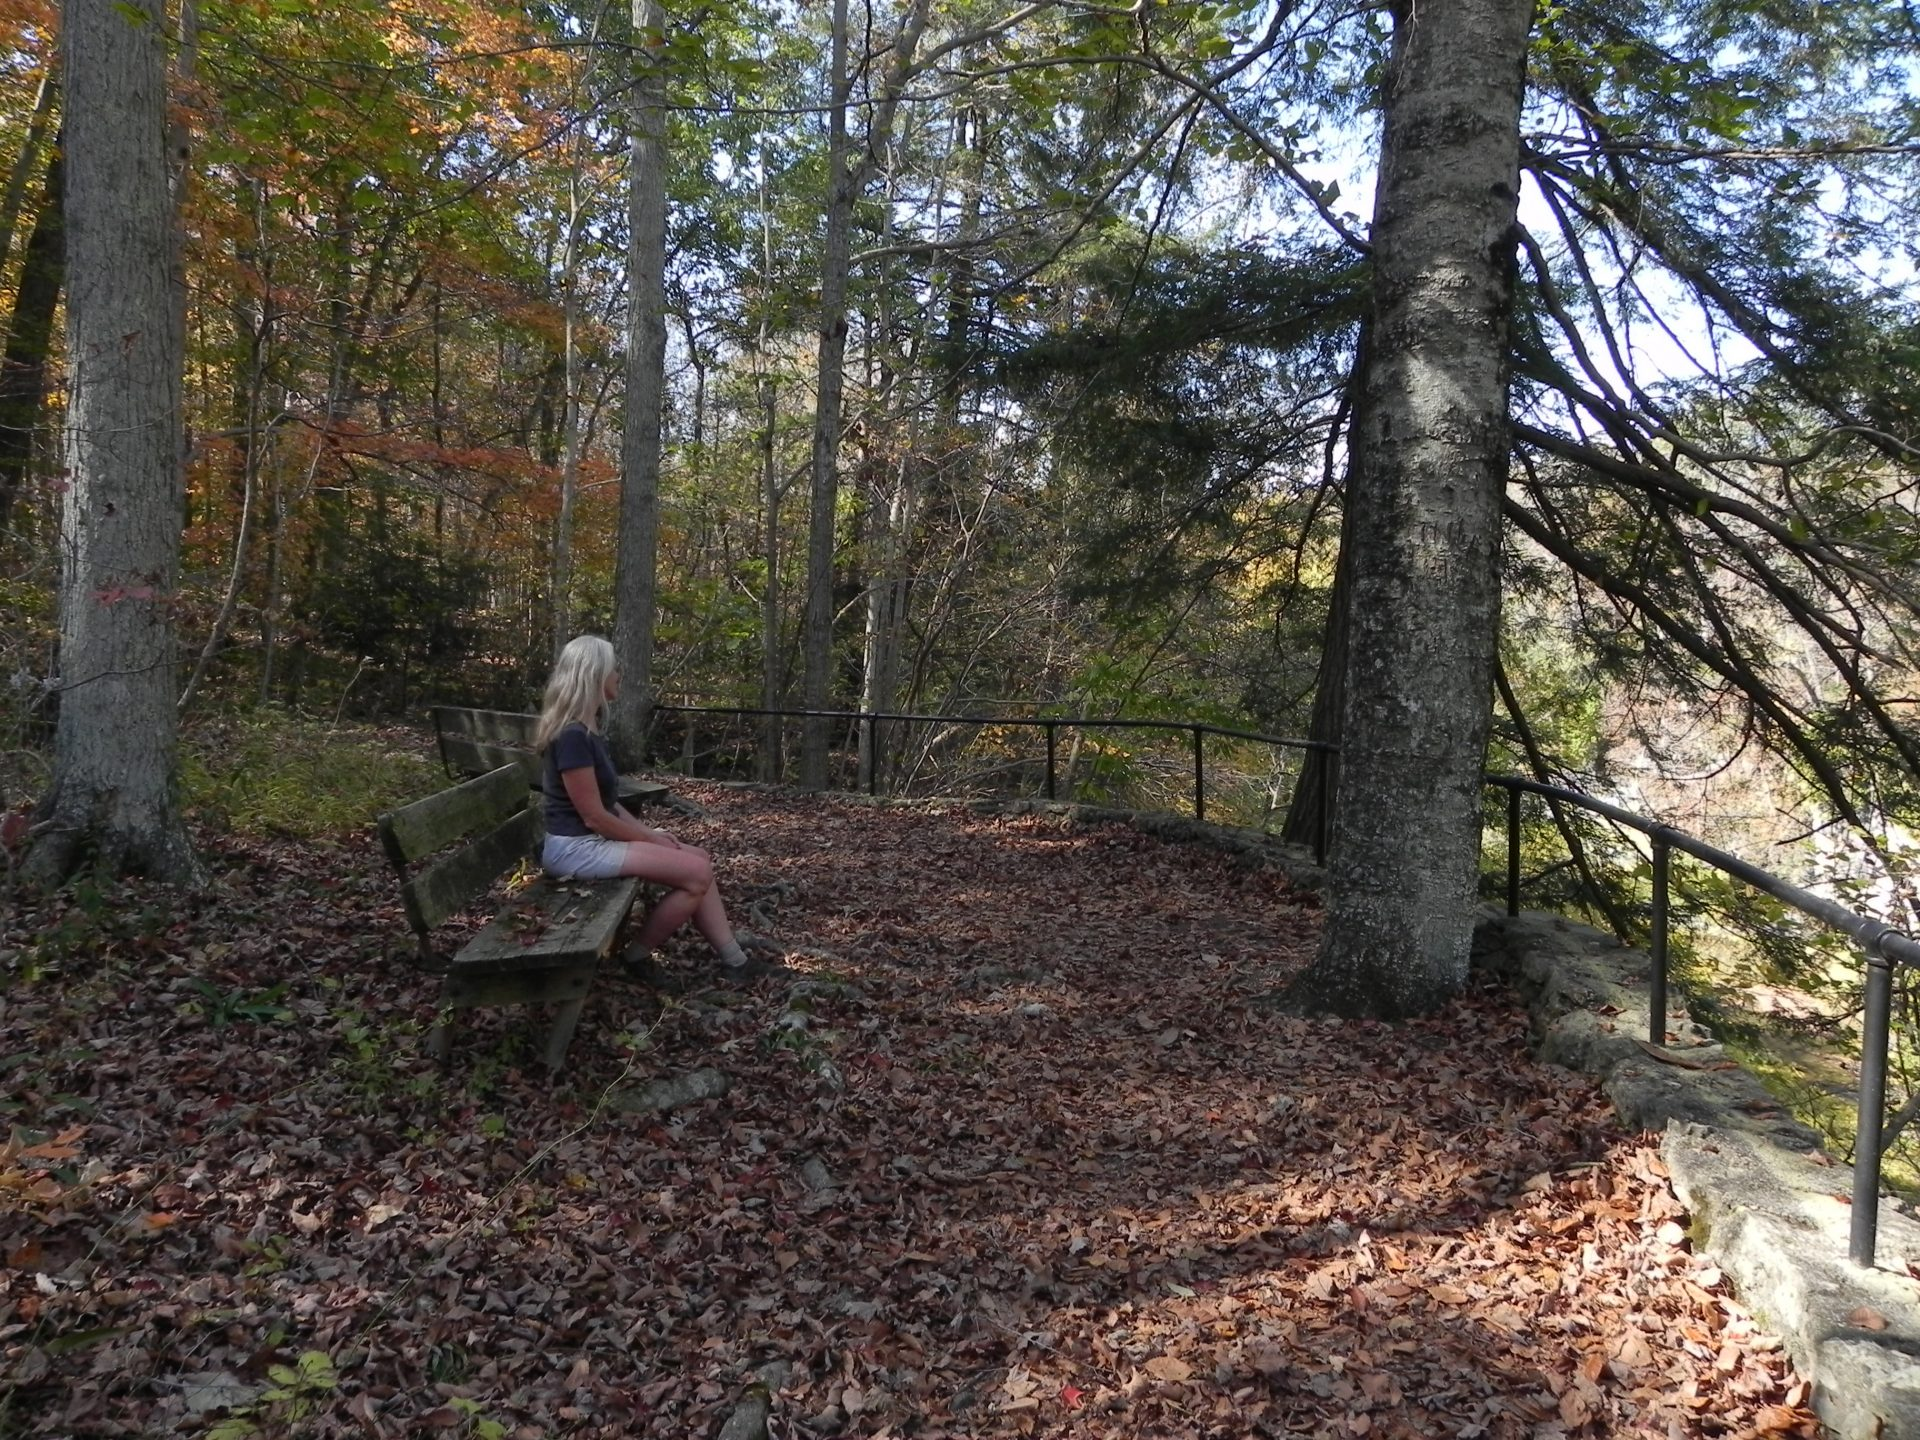 Outstanding views of the Rocky Fork Gorge can be found on the Etawah Woods Trail